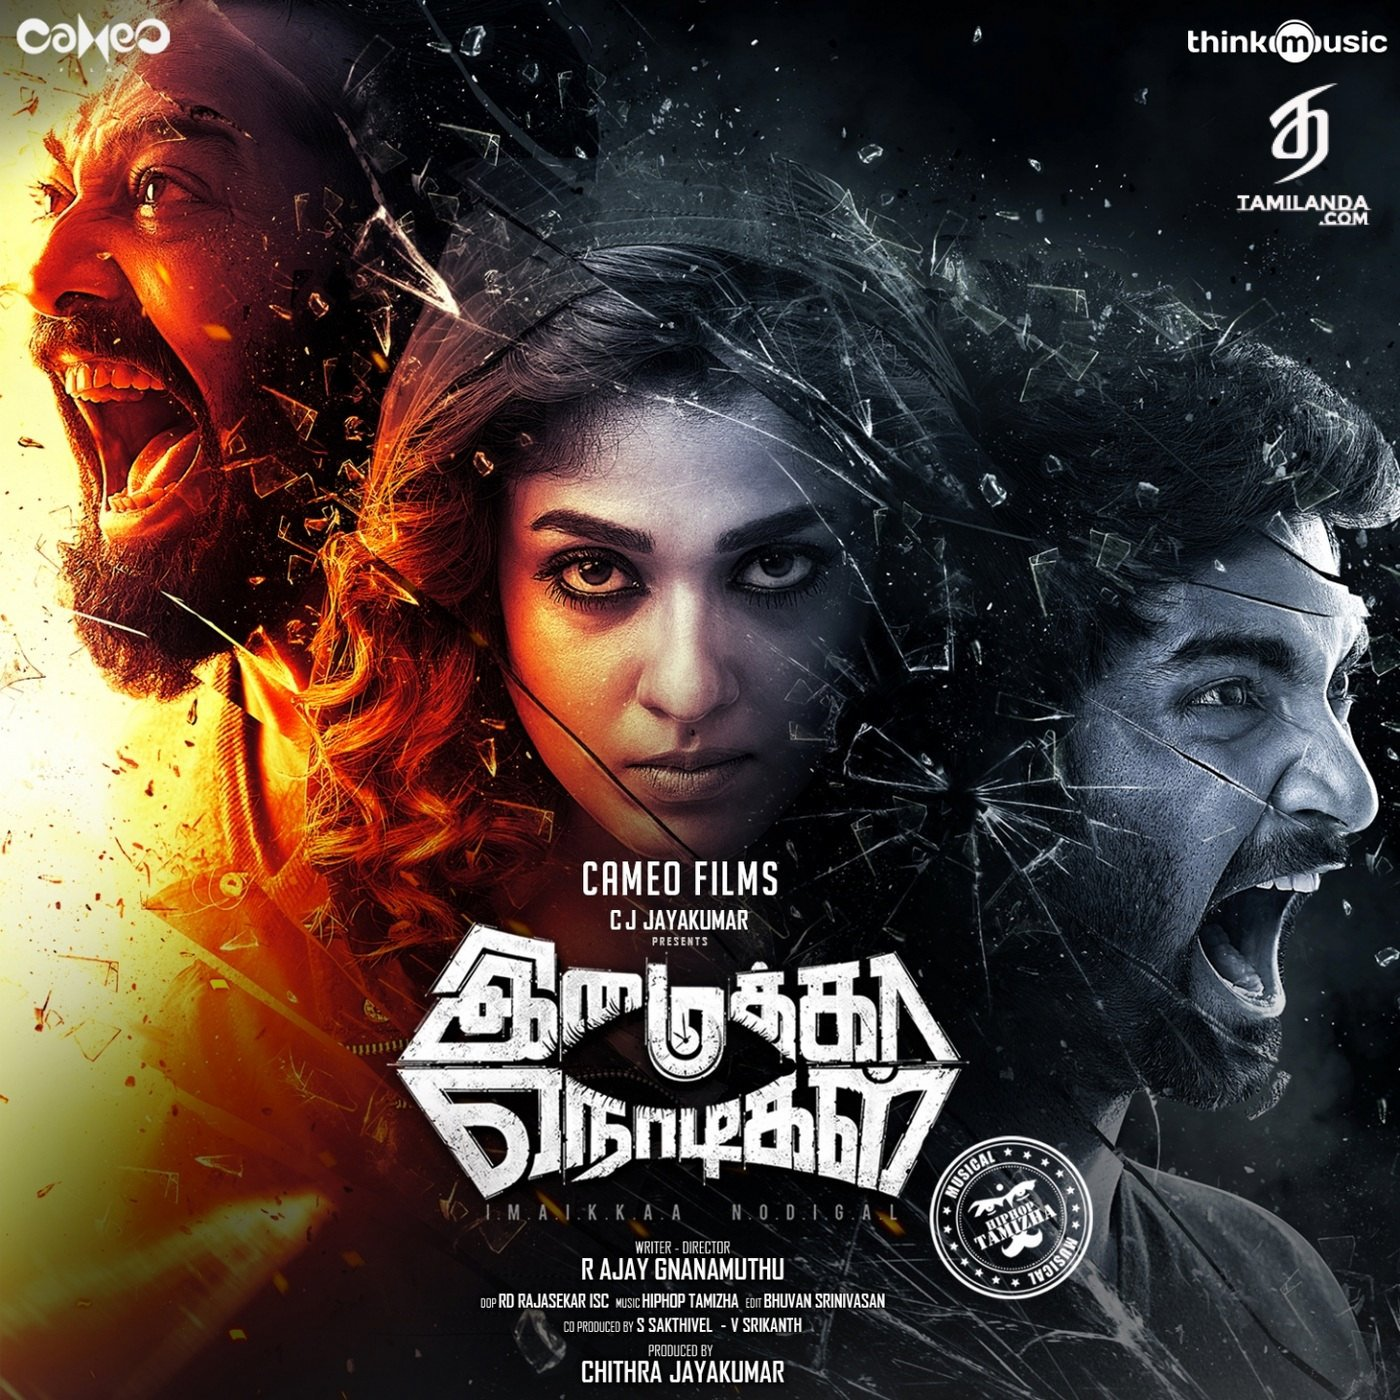 Imaikkaa Nodigal FLAC Songs